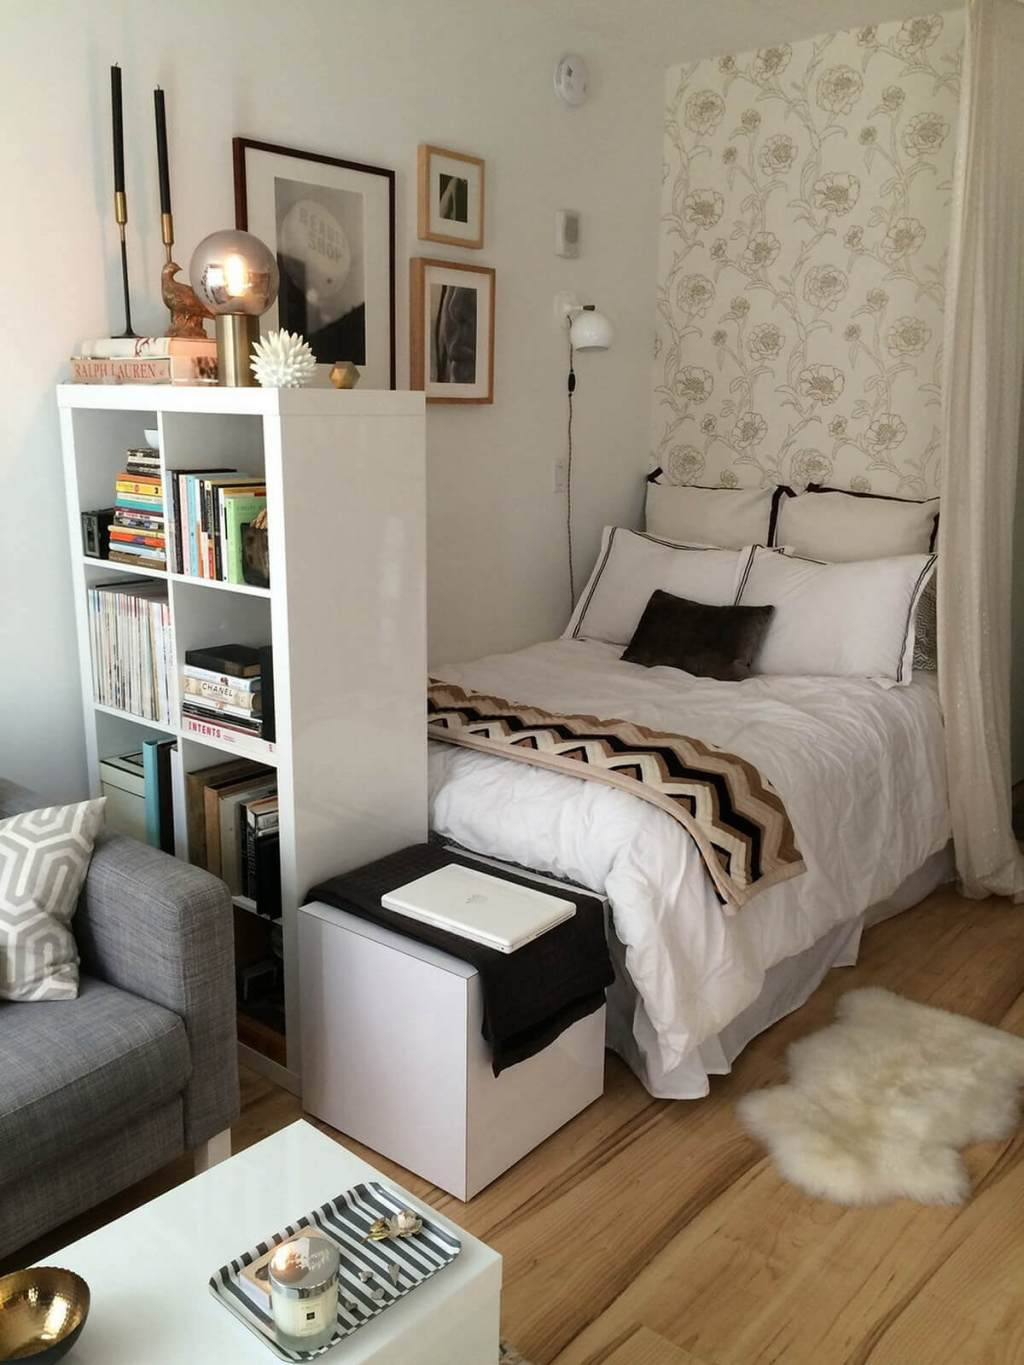 28 Small Bedroom Organization Ideas That Are Smart And Stylish Sharp Aspirant